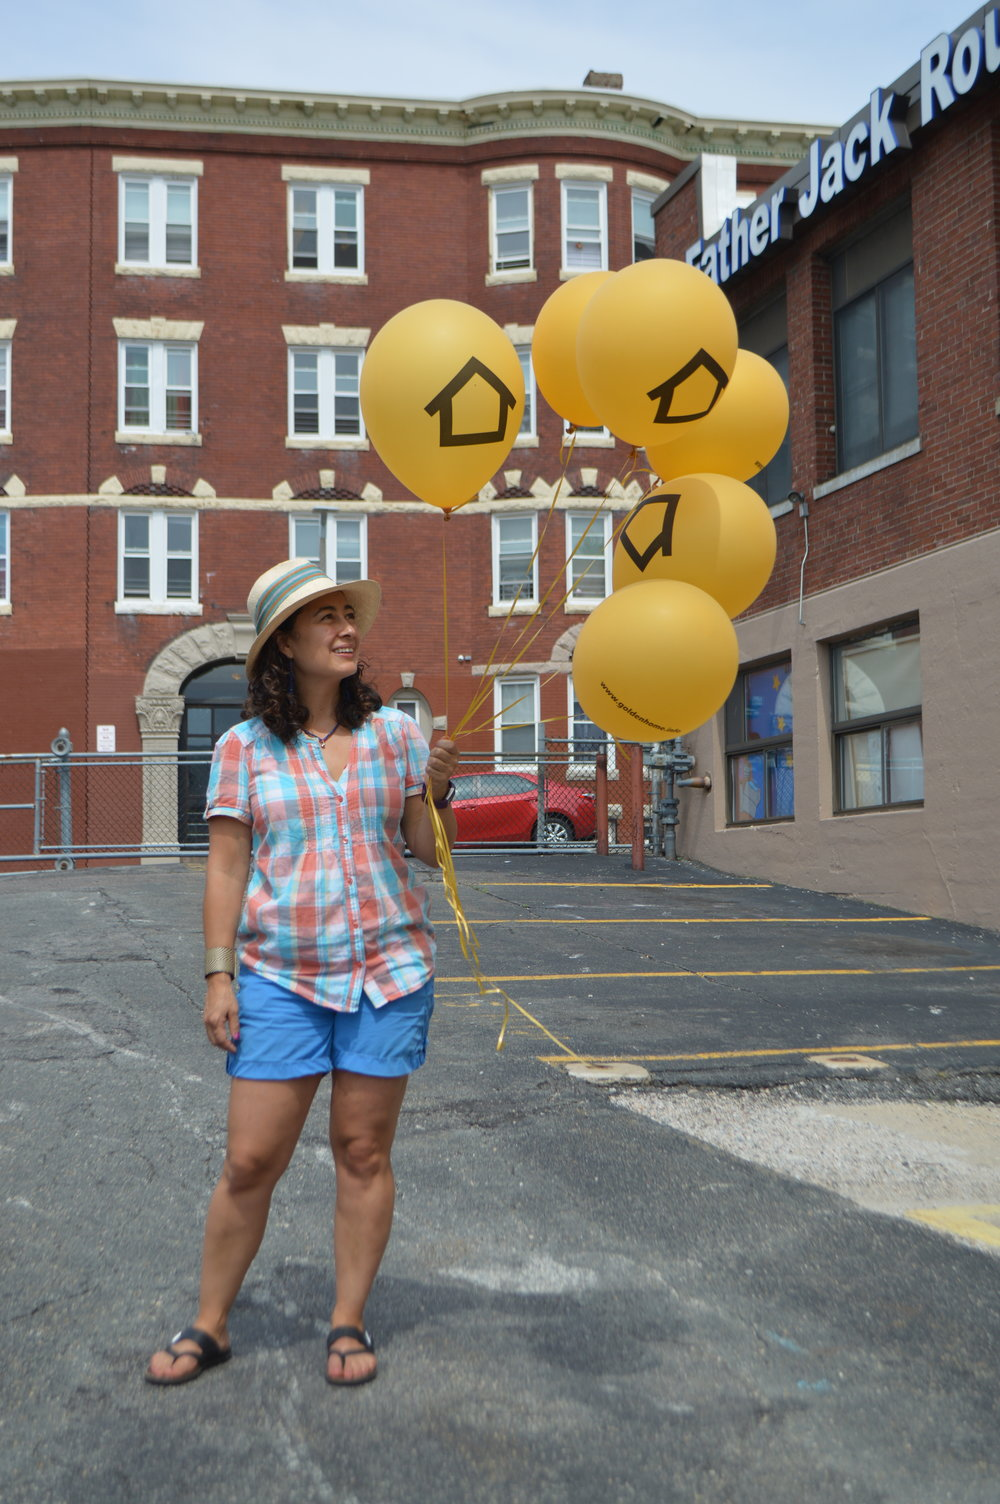 Lina and the  Golden Home  balloons. Photo credit Lina Maria Giraldo.